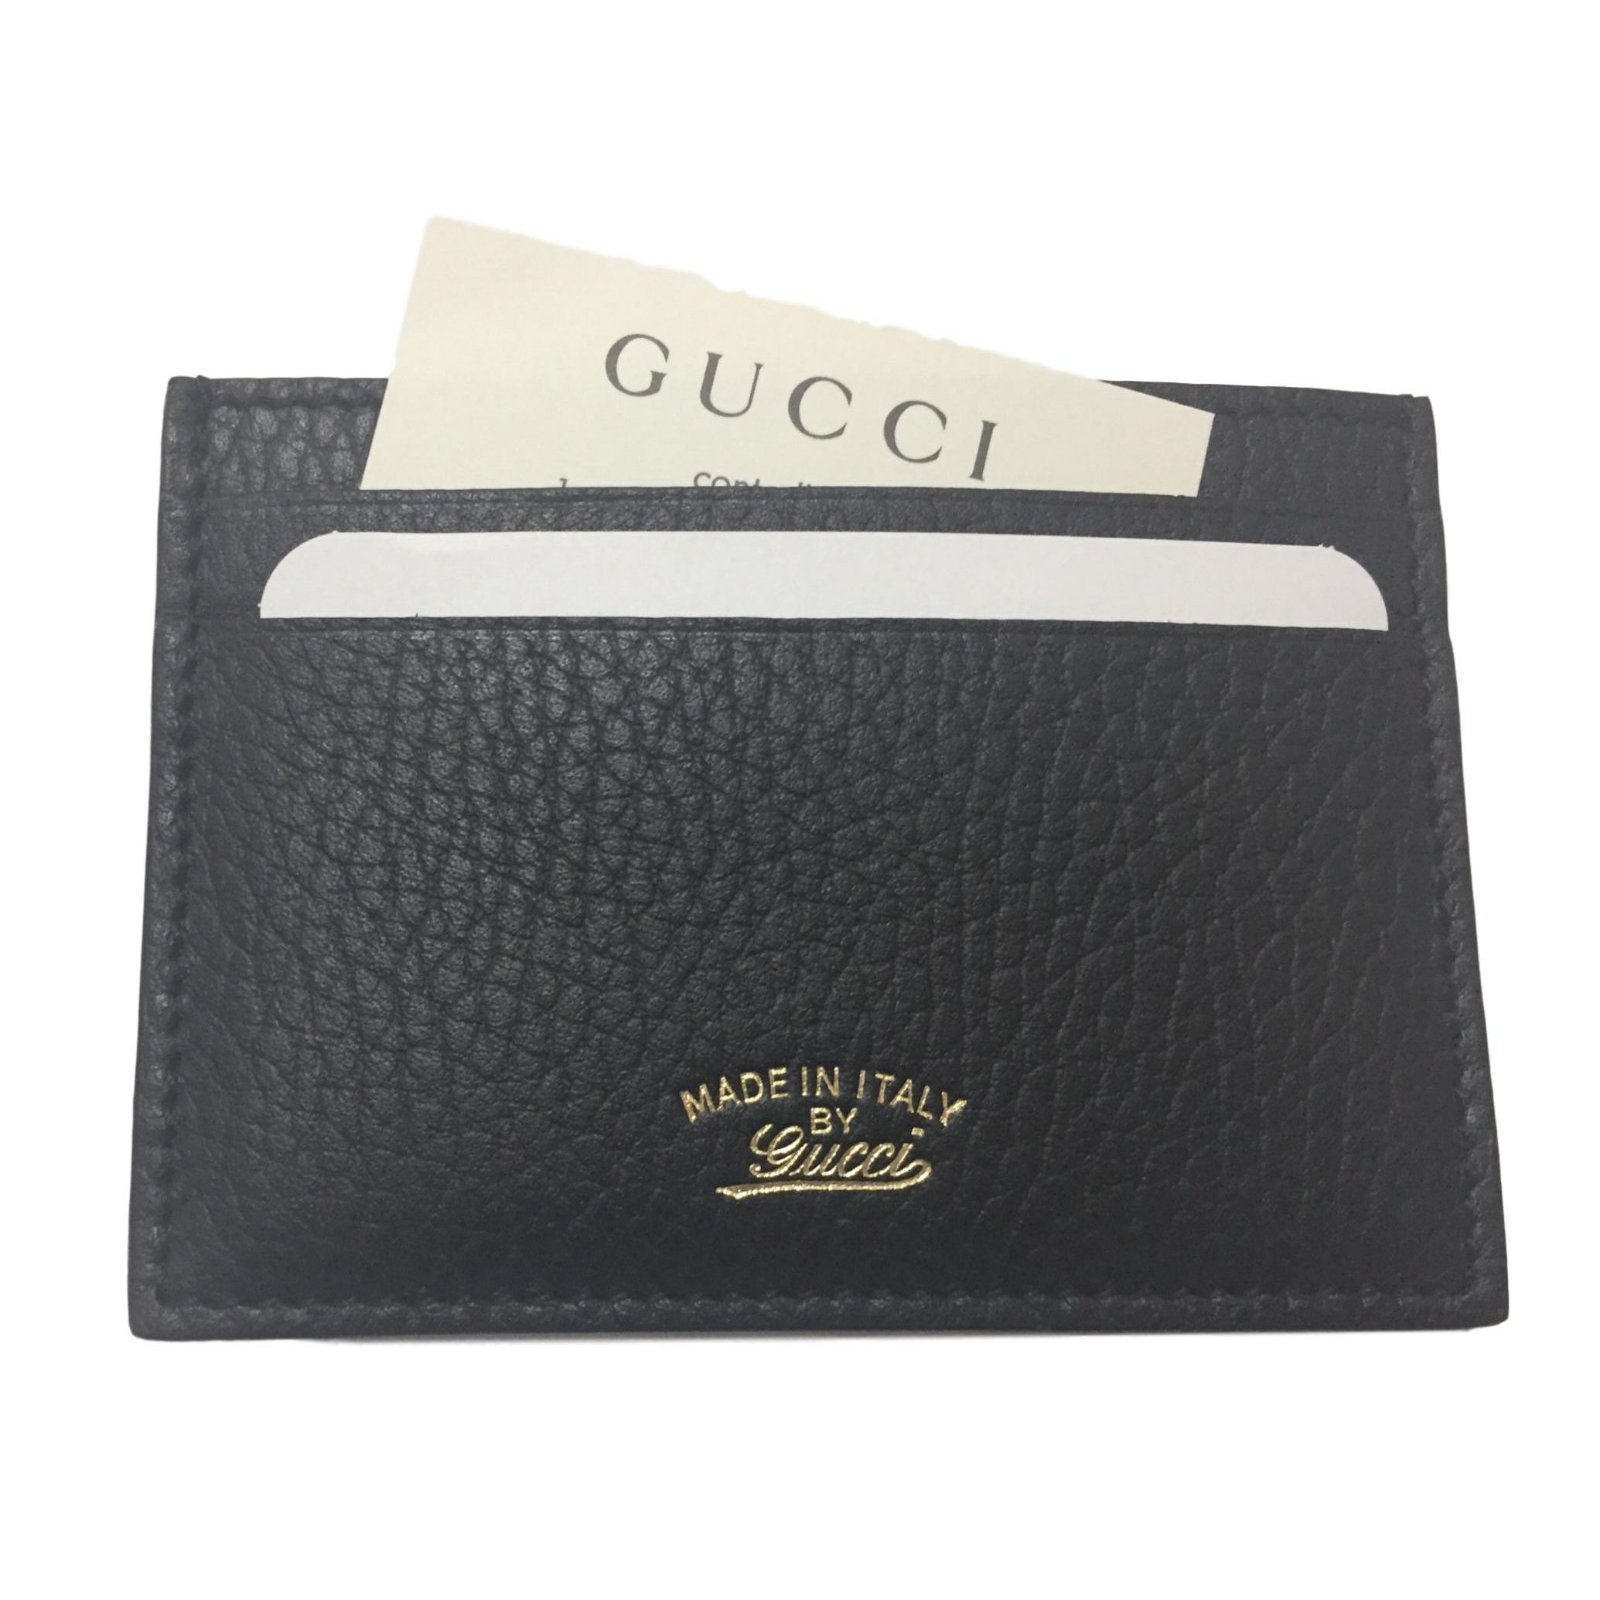 d86af7cd599a Gucci Card holder Purses, wallets, cases Leather Black ref.68798 ...